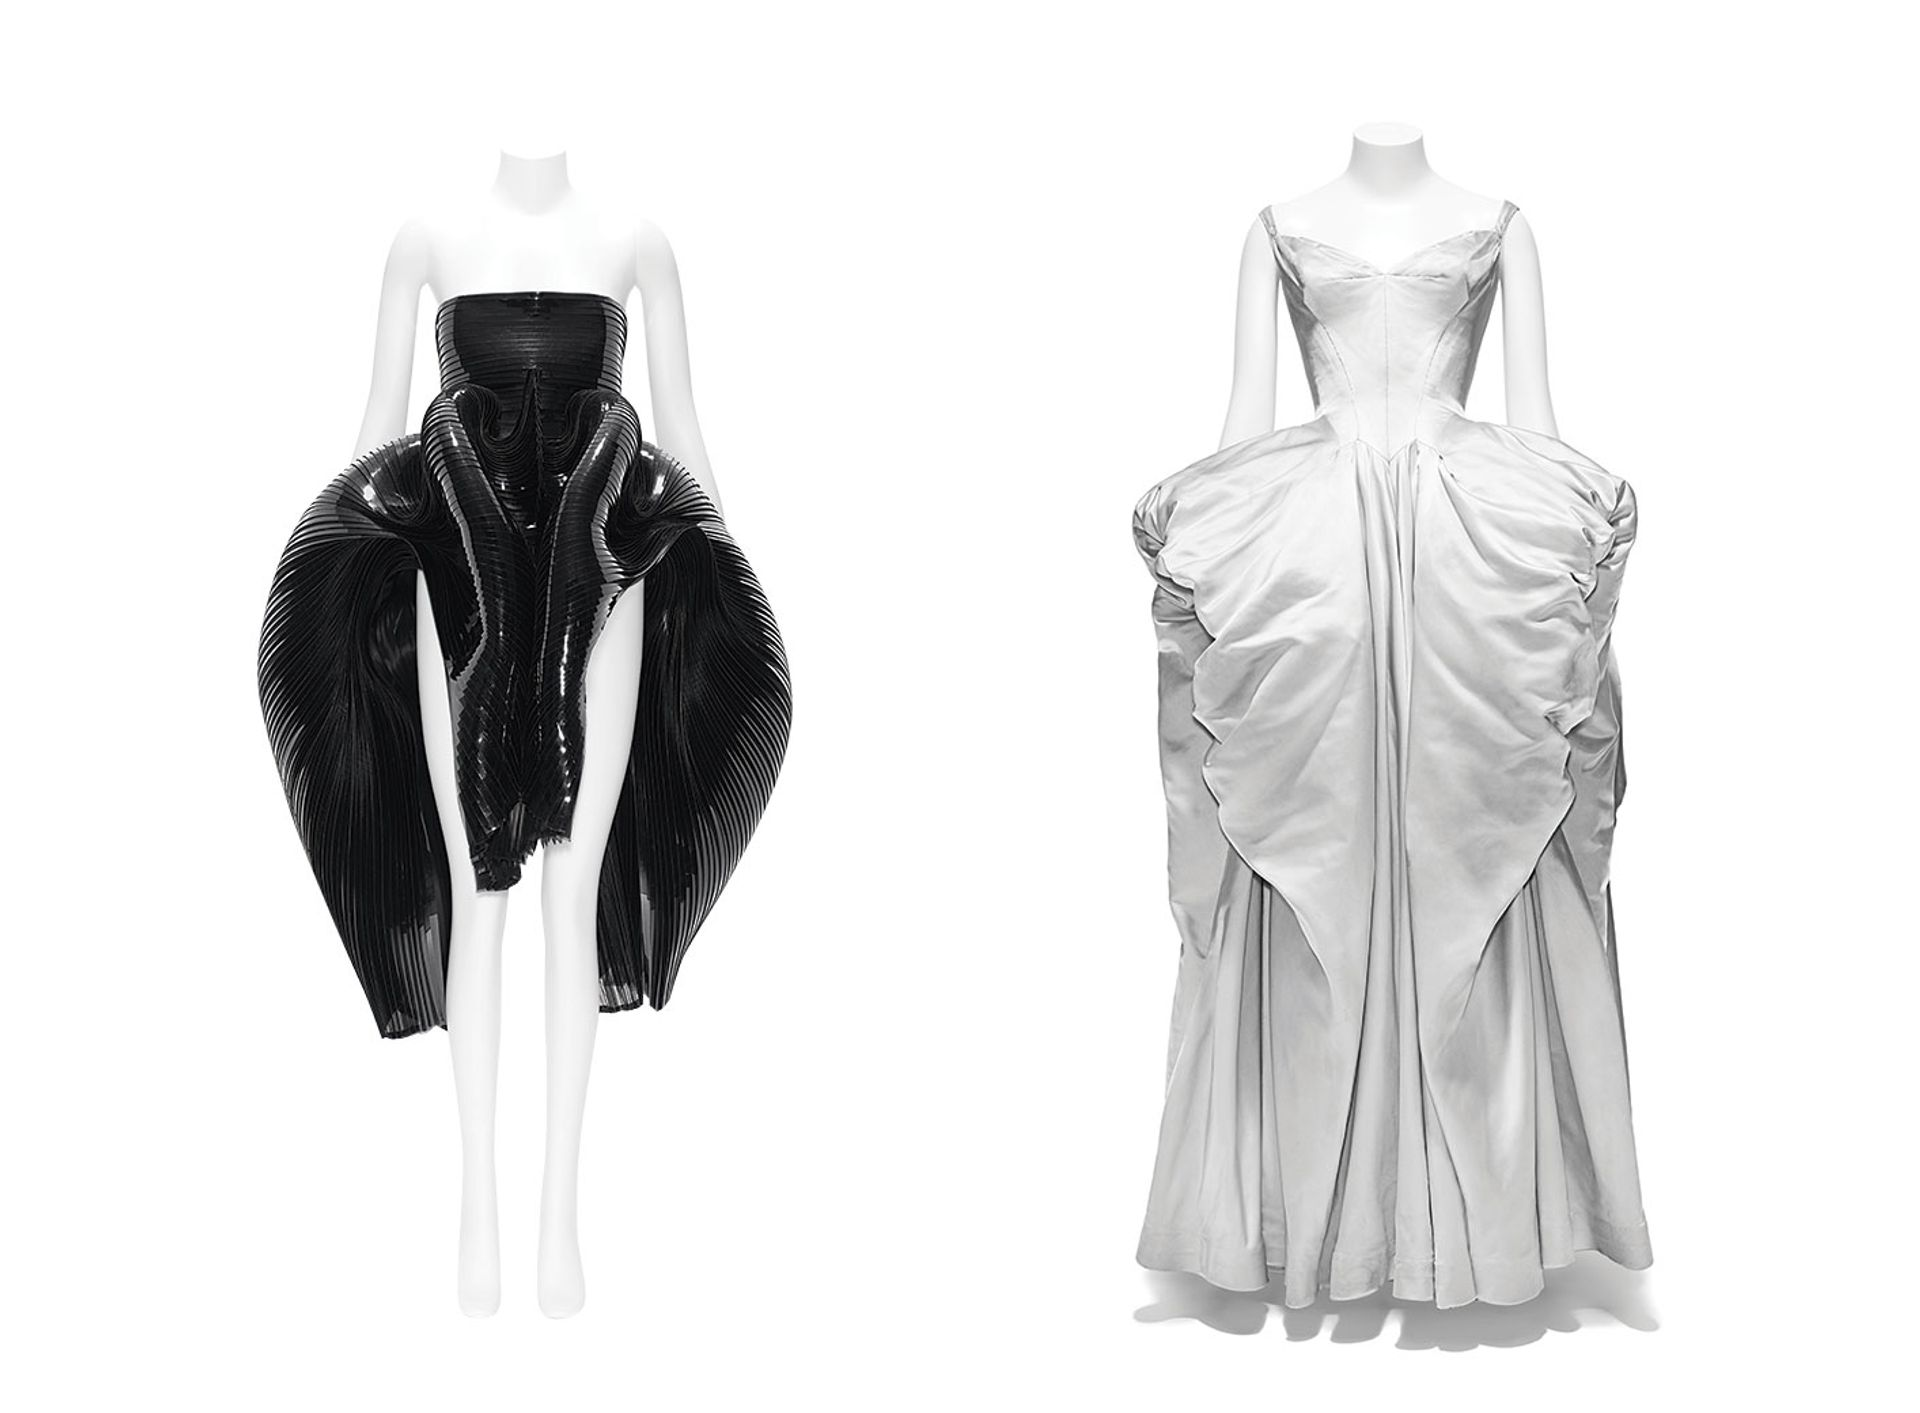 A PVC dress by the Dutch designer Iris Van Herpen (Autumn/Winter 2012-13) is shown alongside a 1950s silk ball gown by Charles James in the Met's Costume Institute show About Time